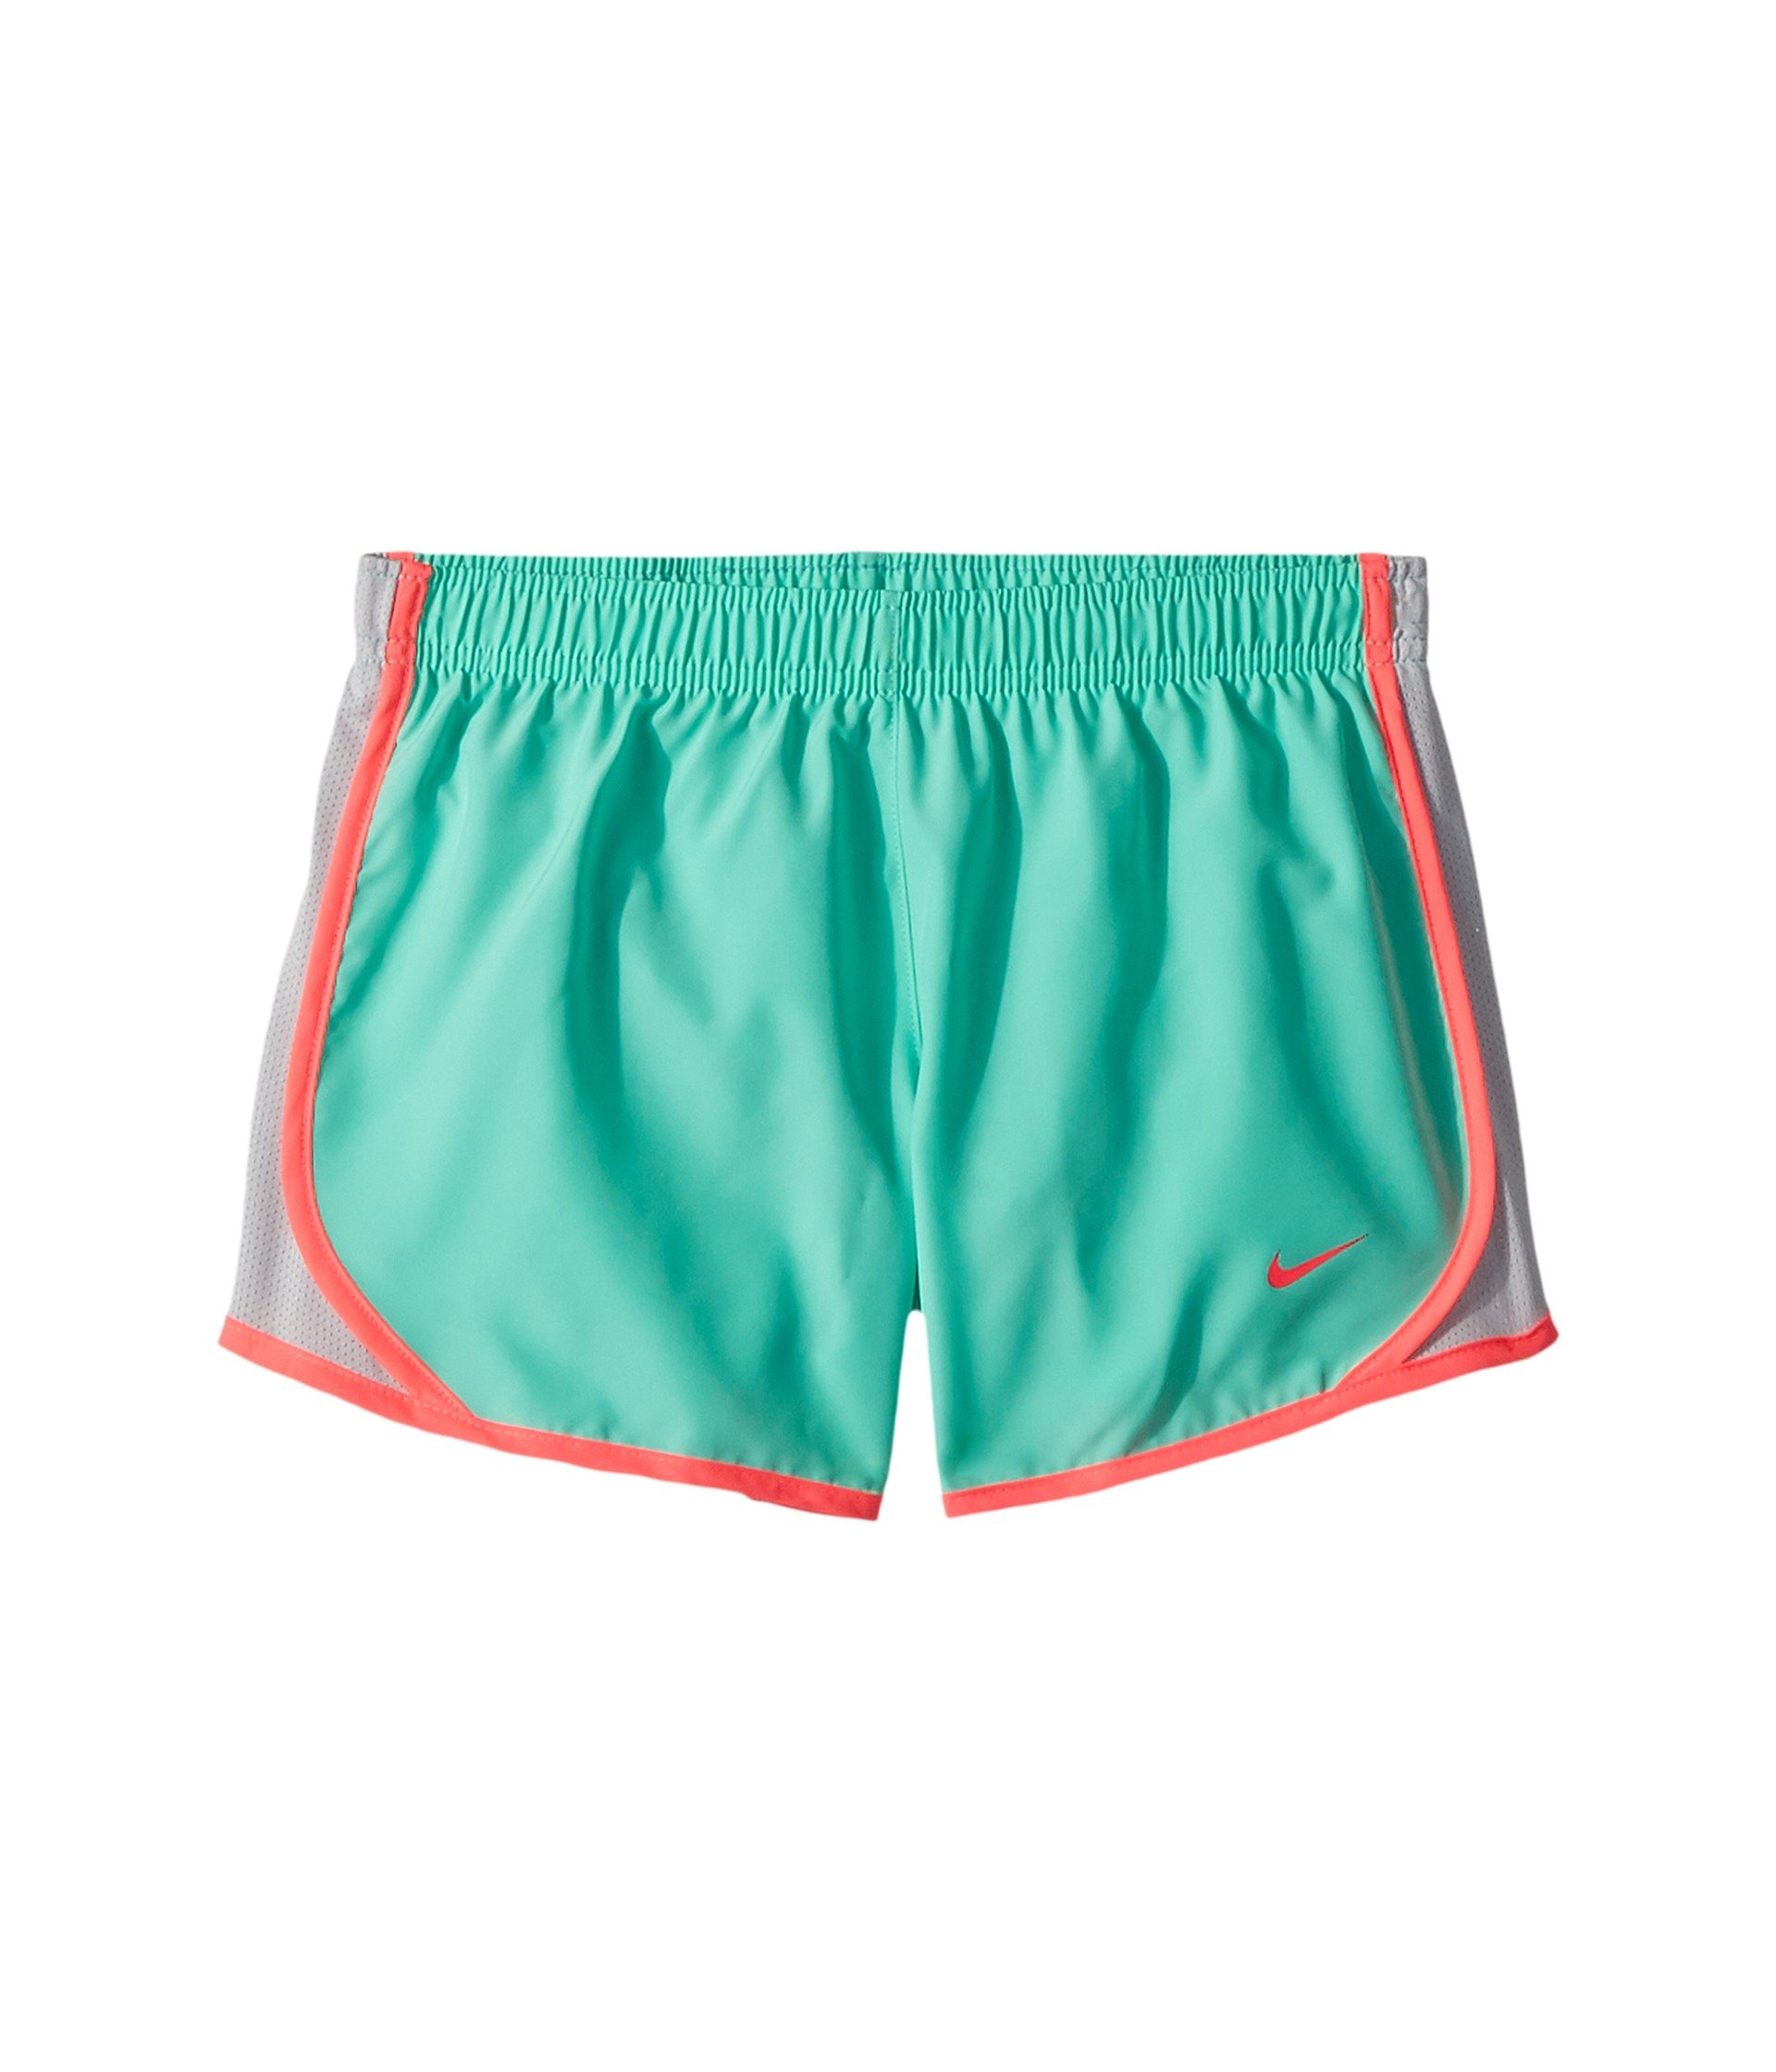 Nike Girl's Dry Tempo Running Shorts (Menta, Large) by Nike